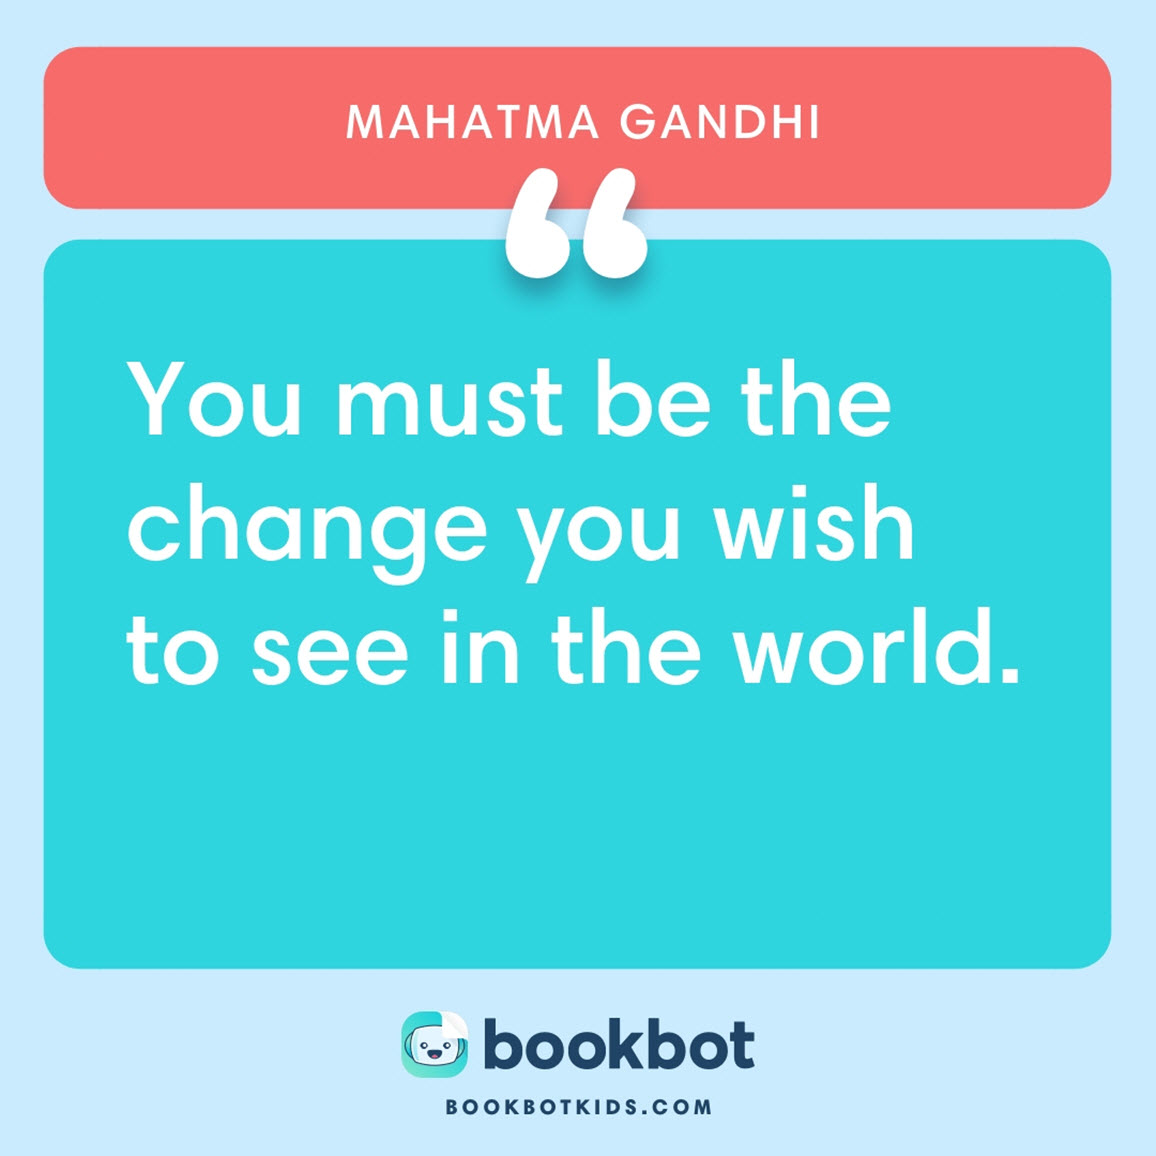 You must be the change you wish to see in the world. – Mahatma Gandhi